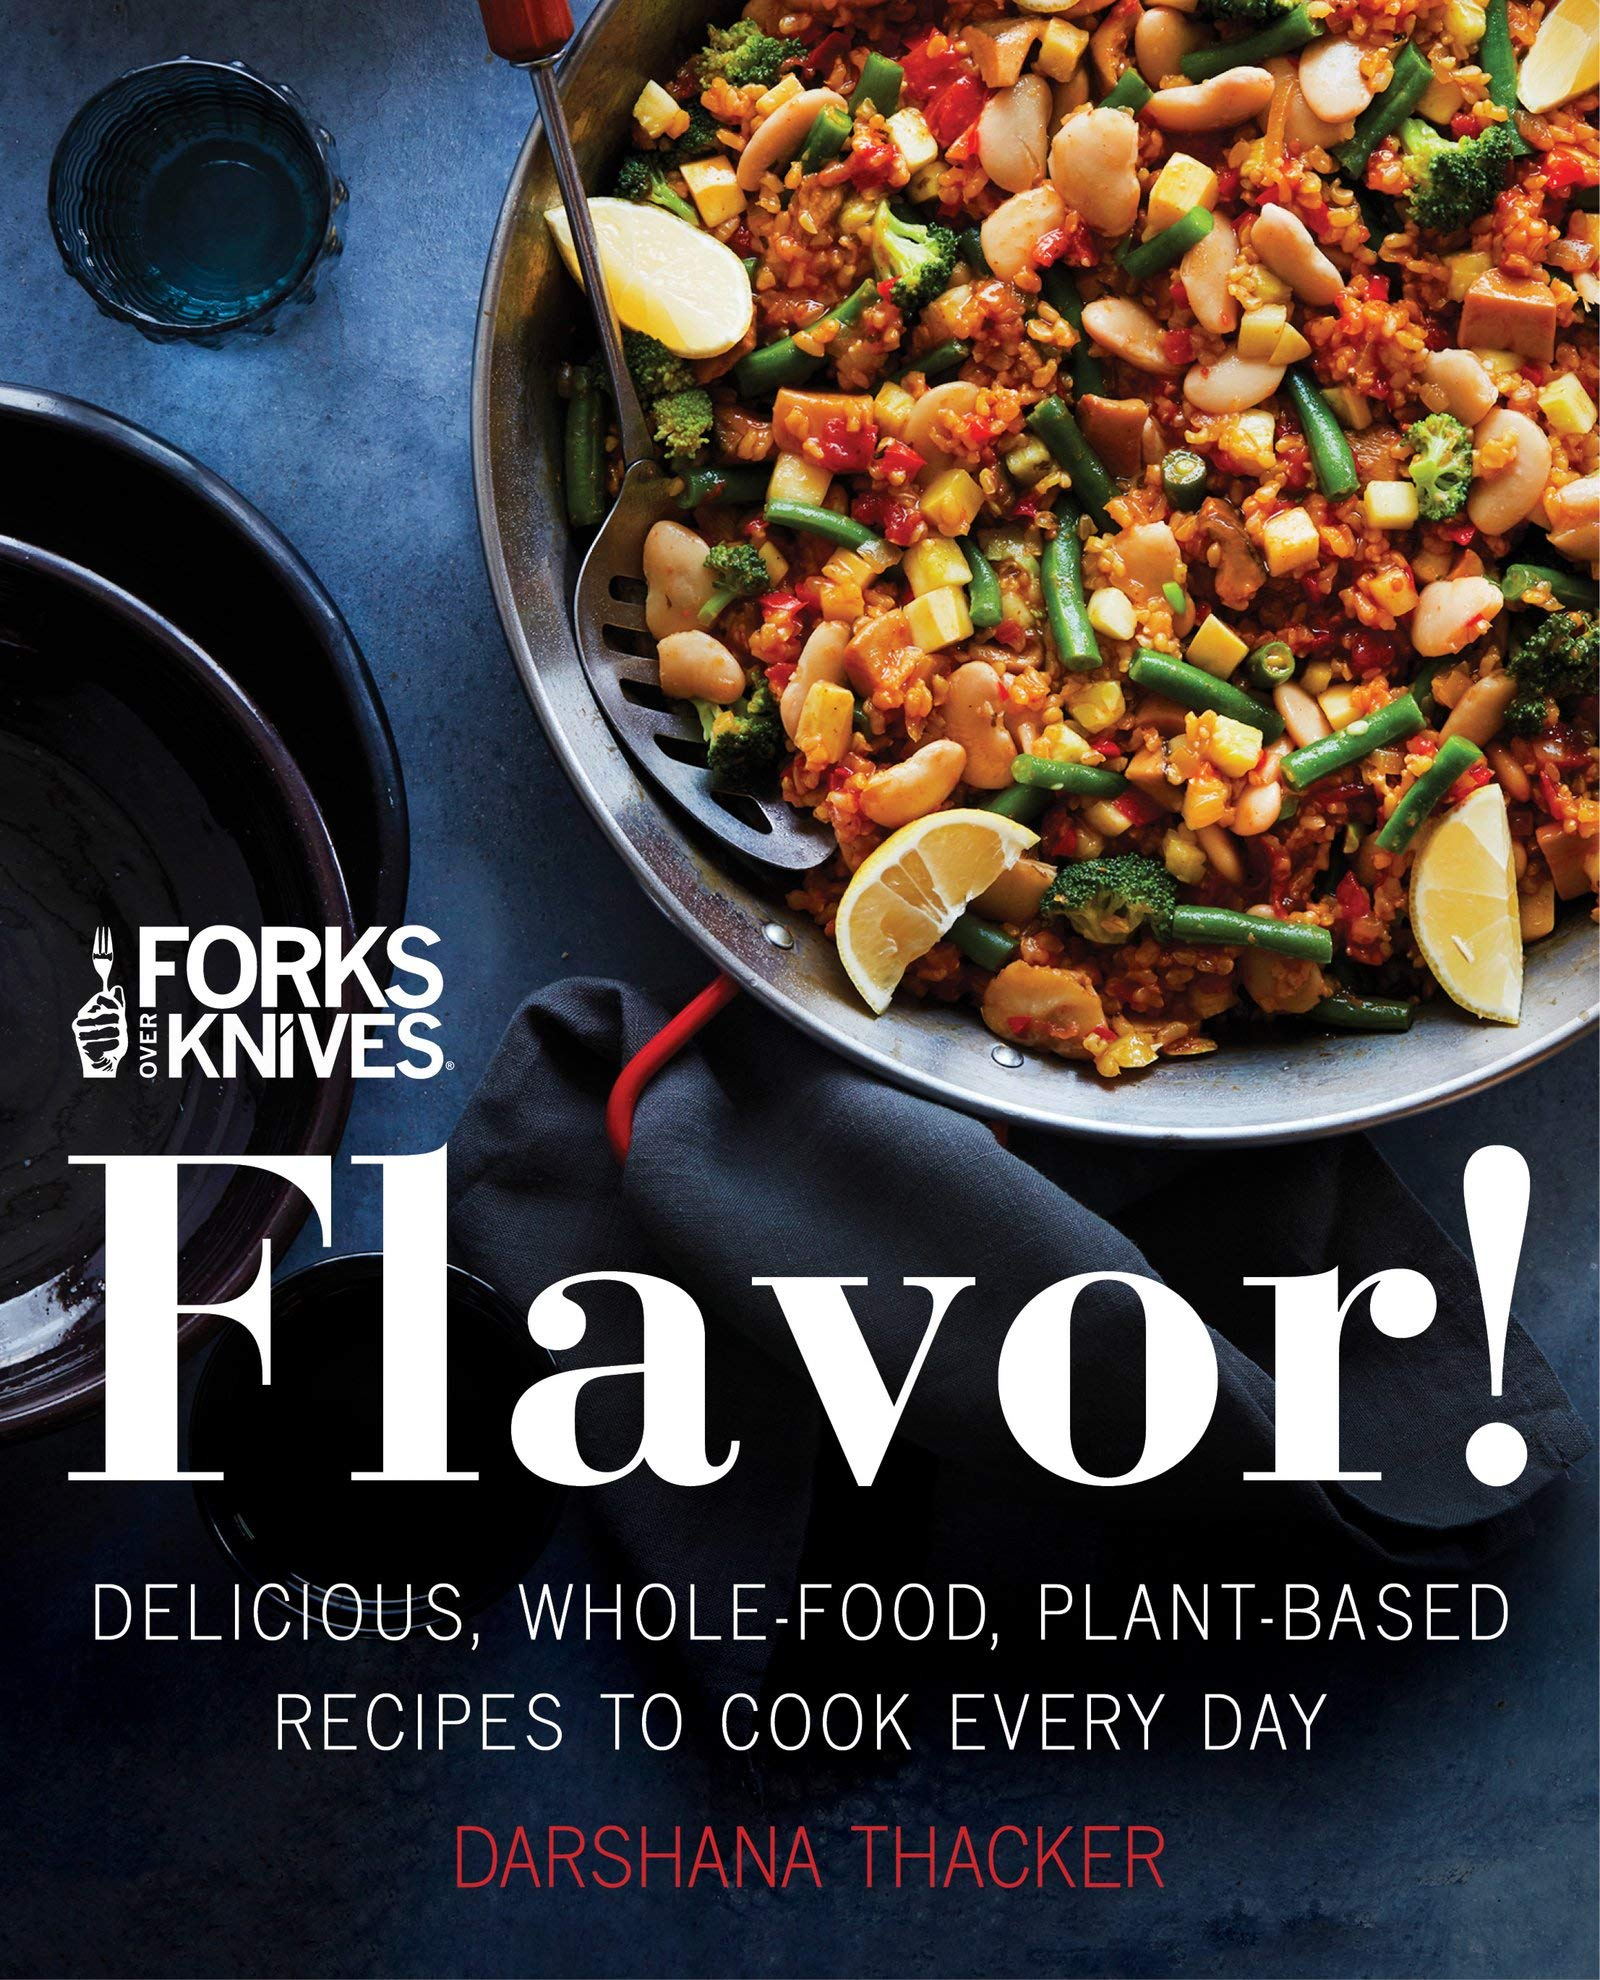 Forks Over Knives: Flavor!: Delicious, Whole-Food, Plant-Based Recipes to Cook Every Day pdf epub